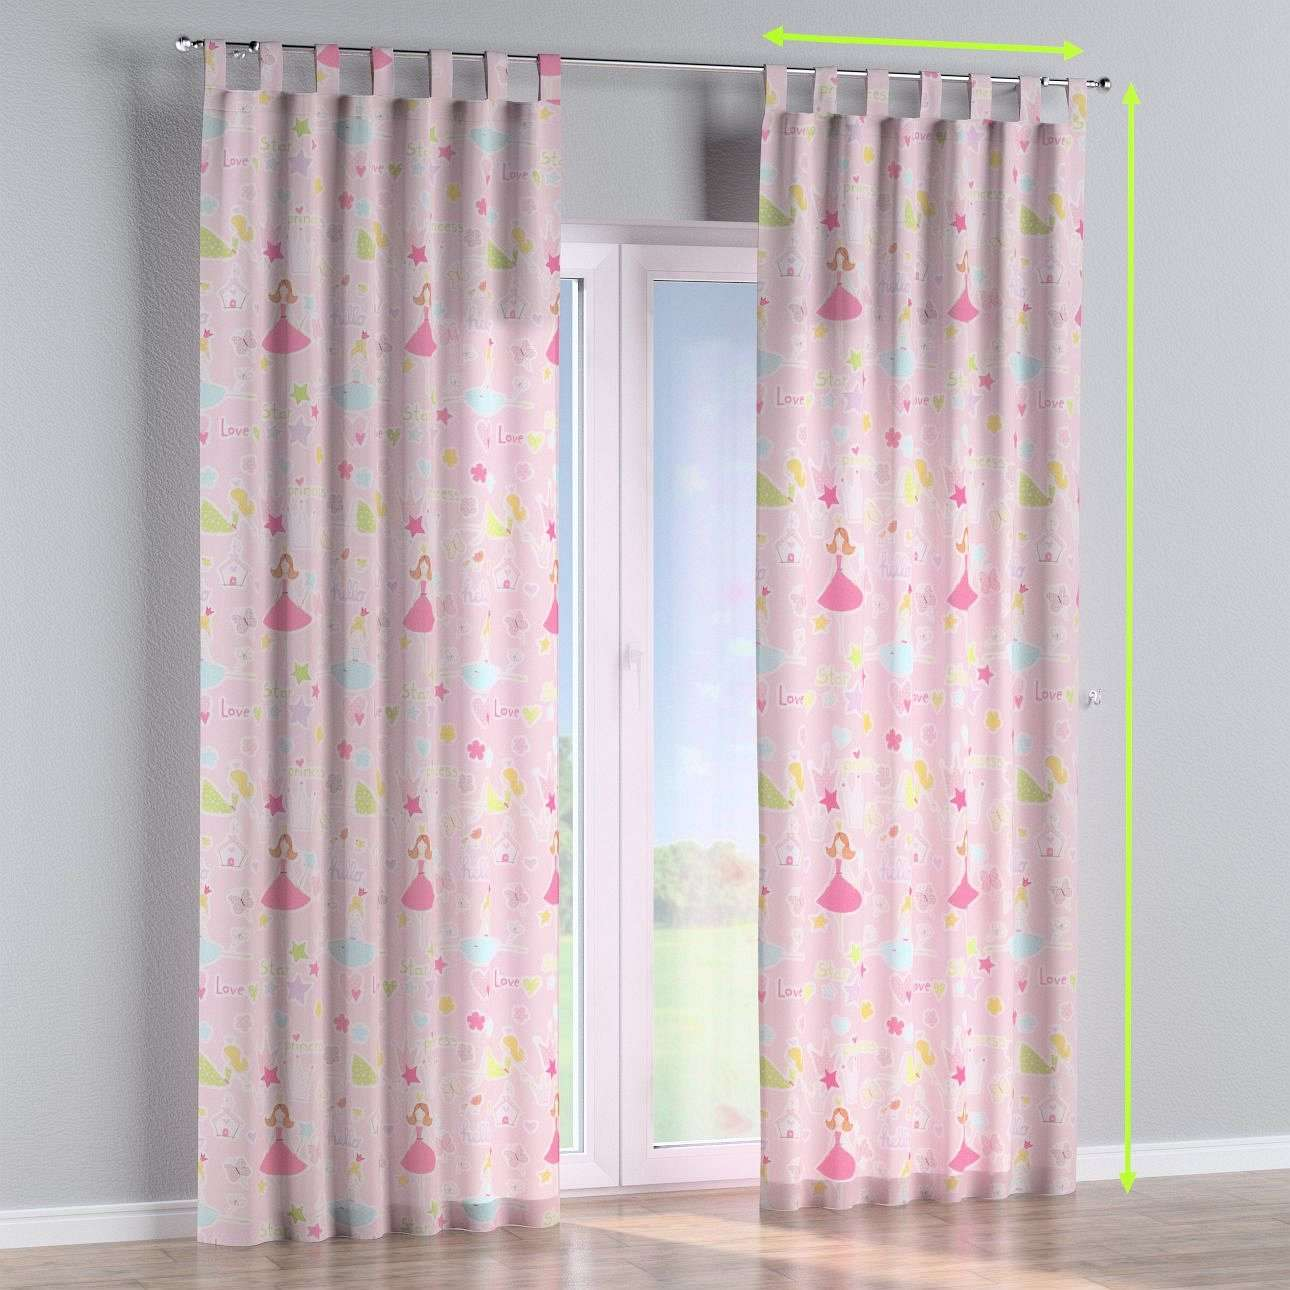 Tab top curtains in collection Little World, fabric: 141-50